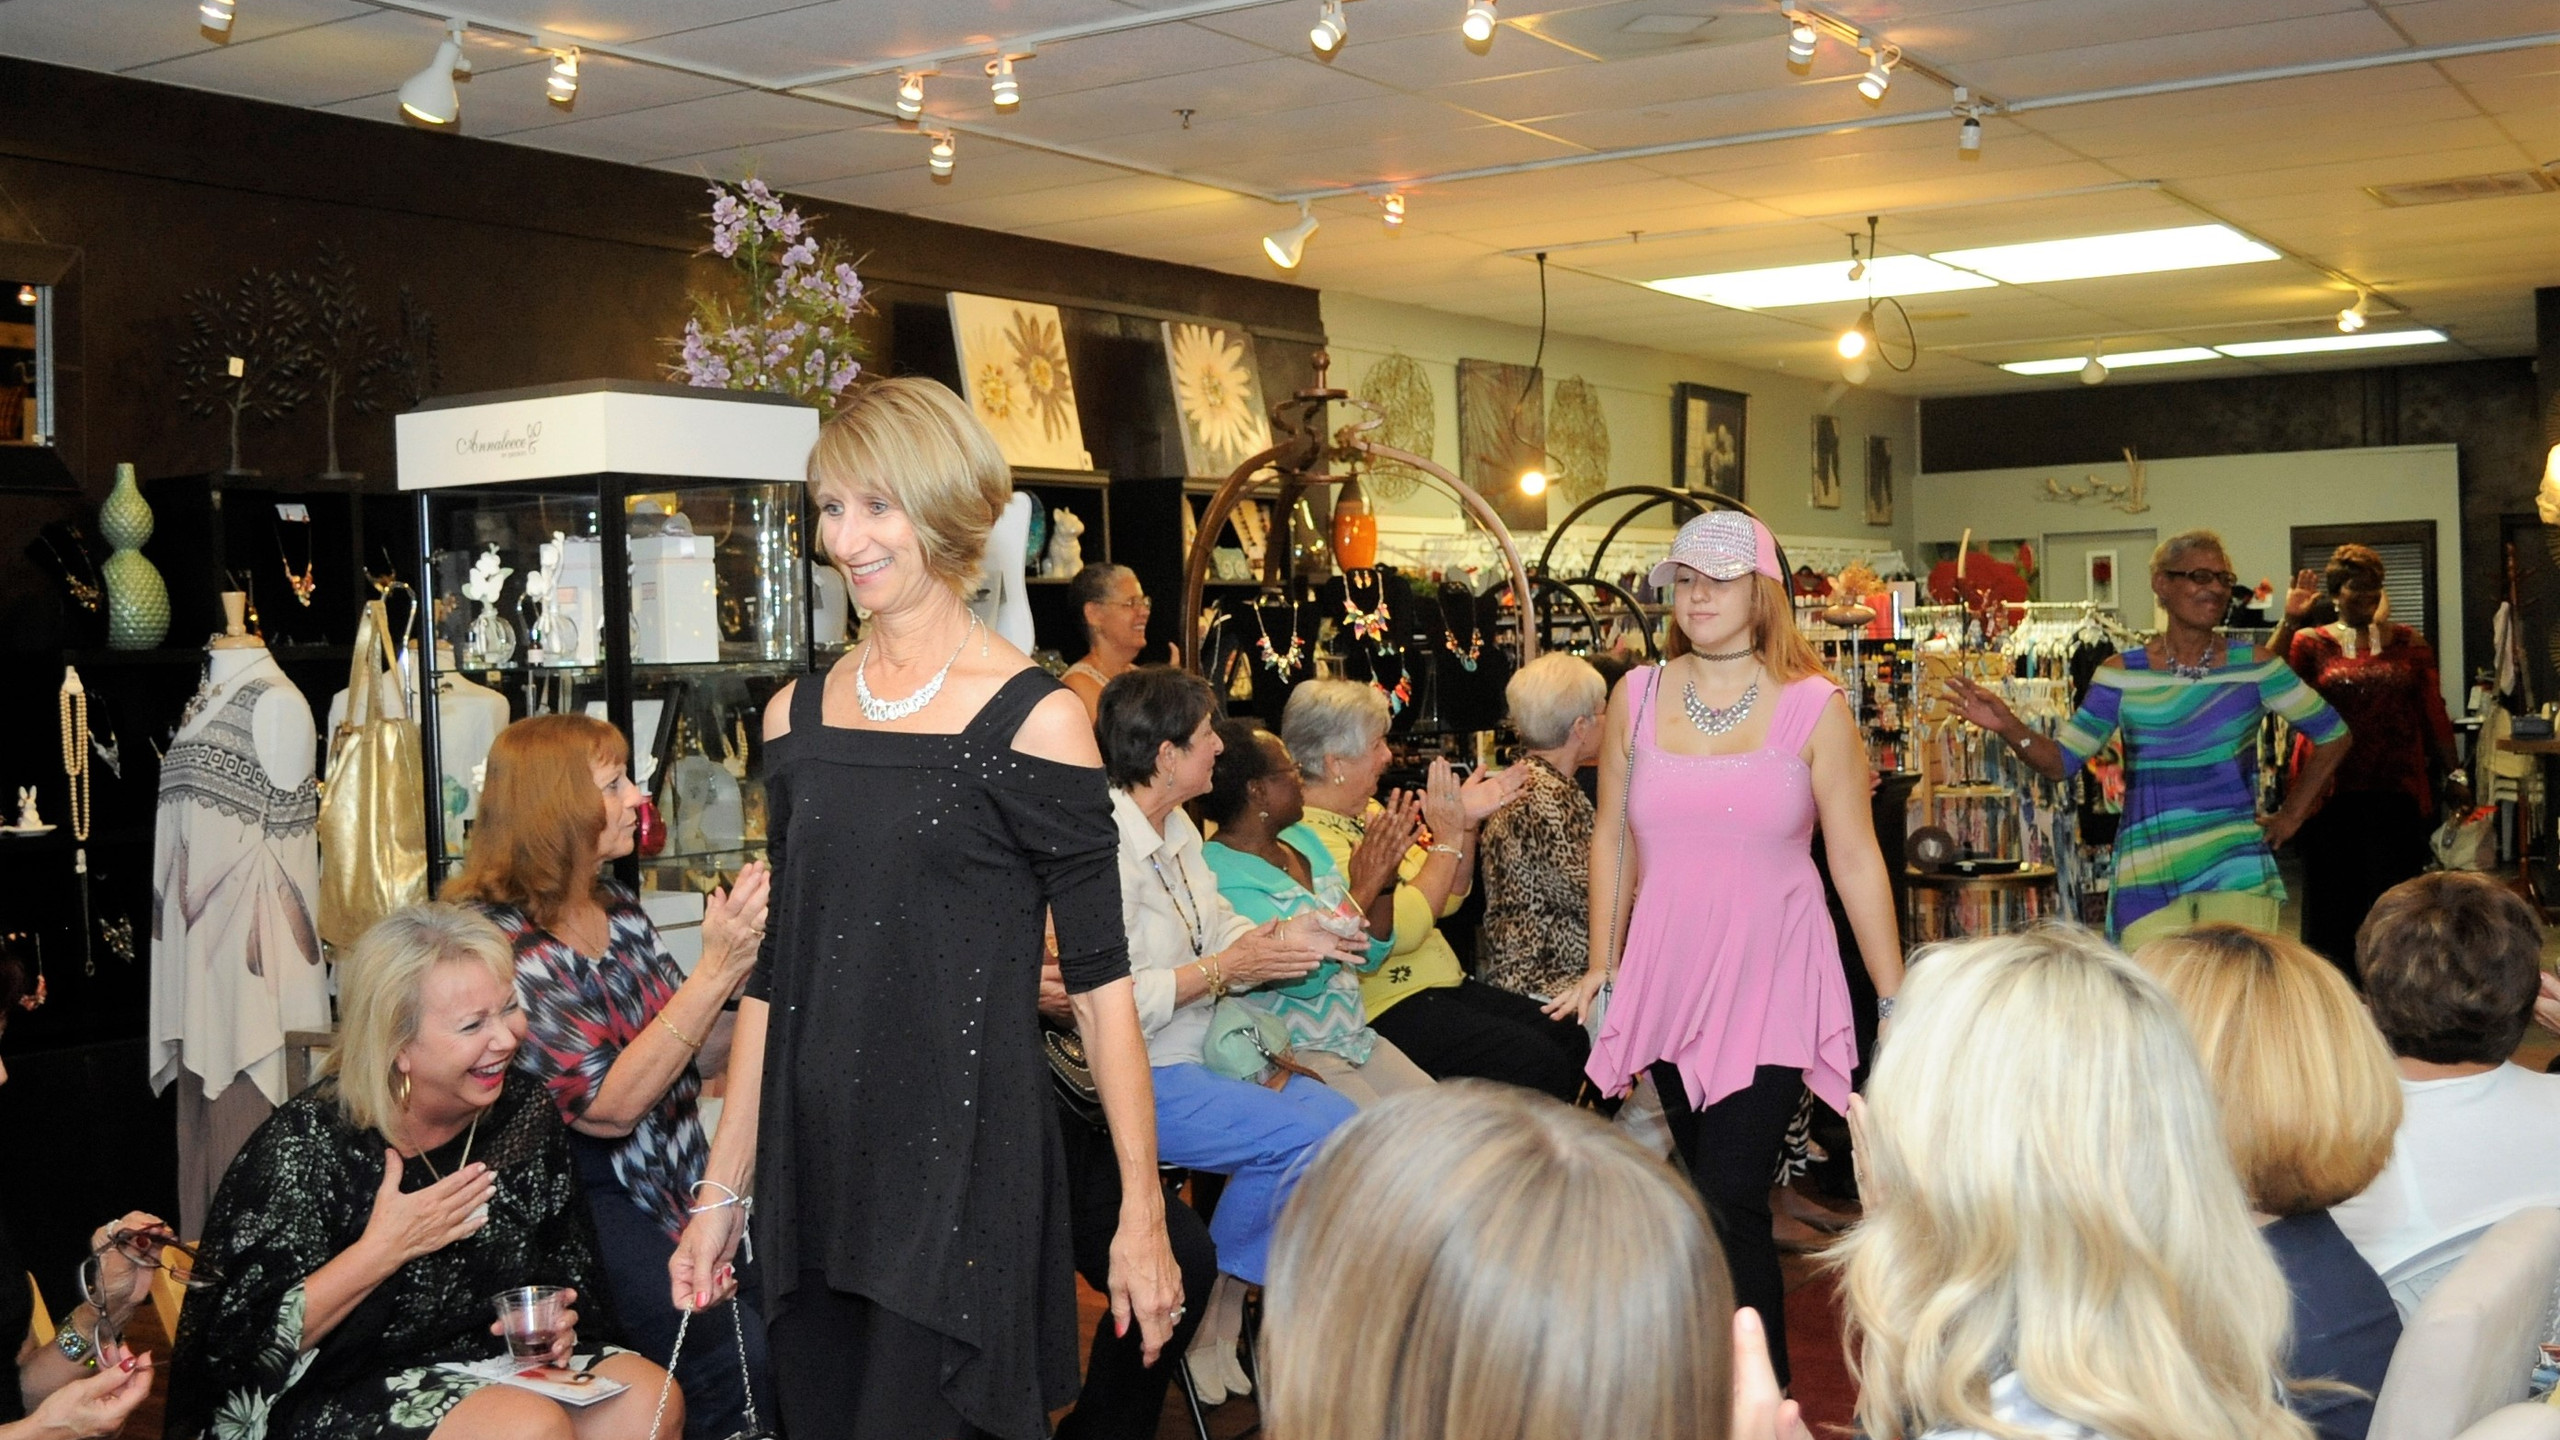 Fashion event at Chez Jacqueline Gift Shop in Palm Coast